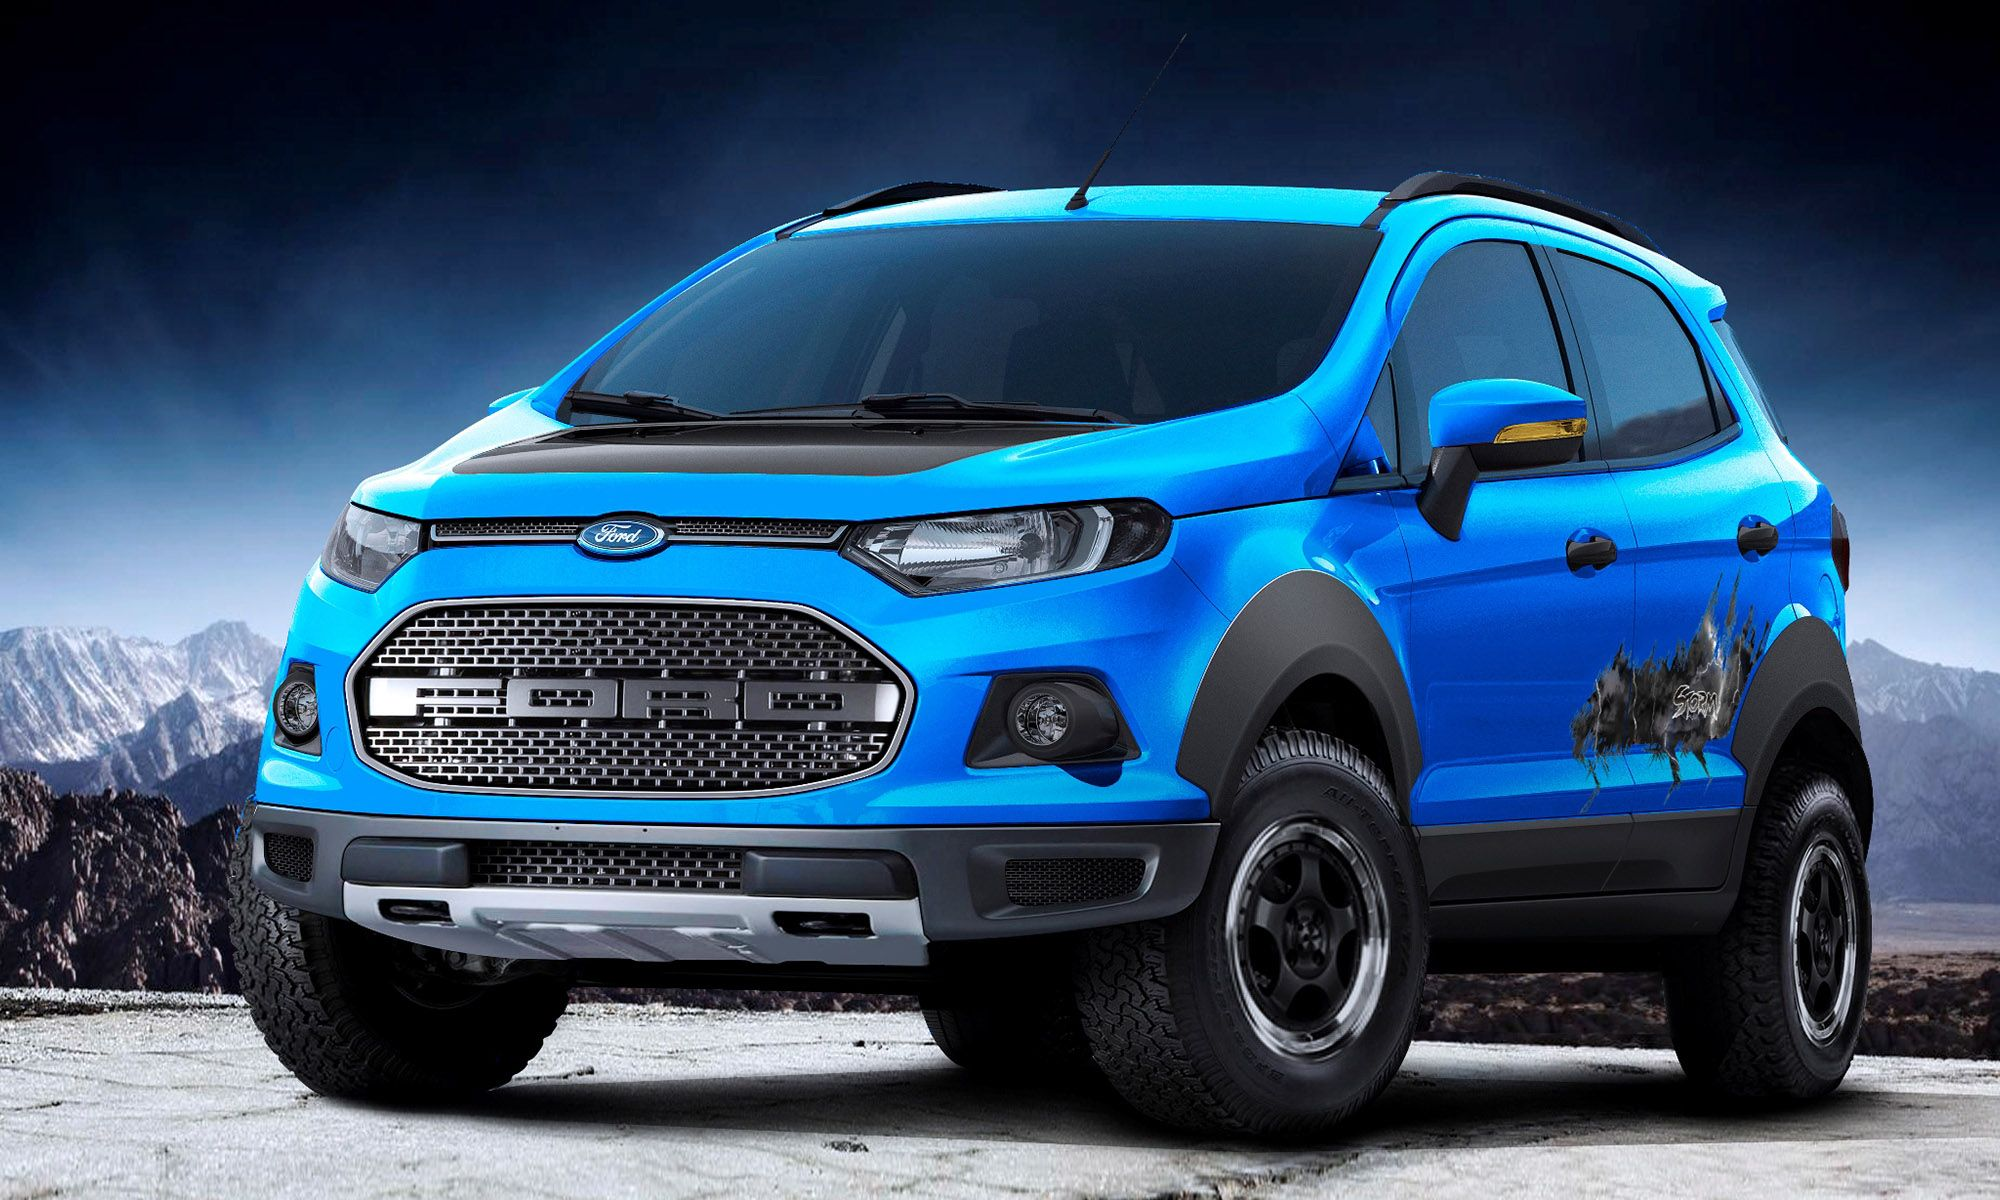 Ford ecosport beauty the beast and storm concepts head to sao paulo http